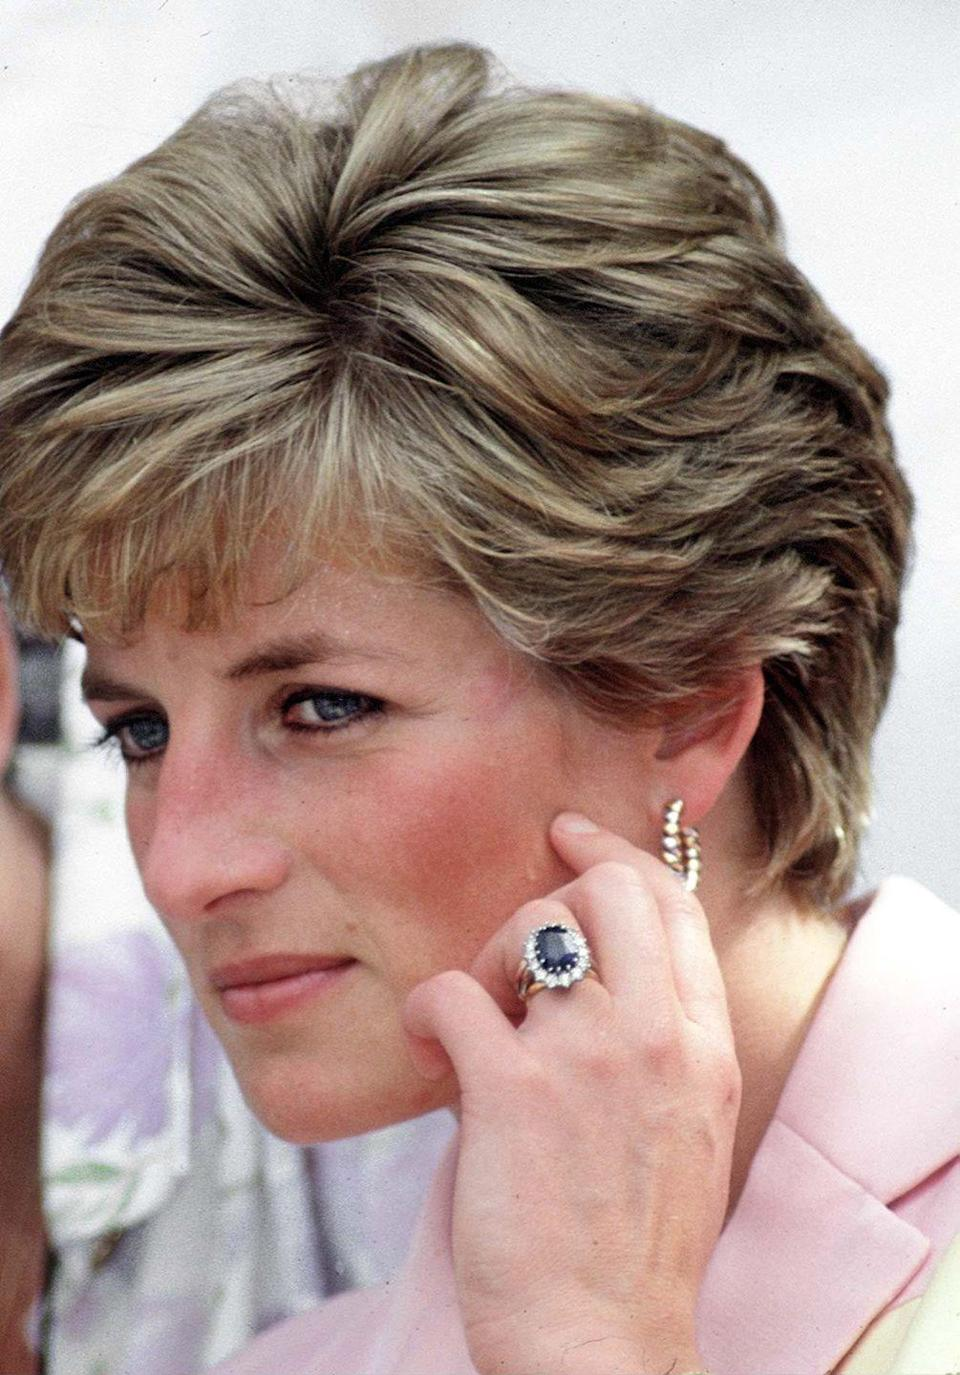 "<p>The ring was a hit with the public and caused a huge trend in colored stone engagement rings. The ring, set in white gold, <a href=""https://www.goodhousekeeping.com/life/a22727712/princess-diana-engagement-ring/"" rel=""nofollow noopener"" target=""_blank"" data-ylk=""slk:featured an 12-carat oval Ceylon sapphire"" class=""link rapid-noclick-resp"">featured an 12-carat oval Ceylon sapphire</a> with cluster diamonds around it. </p>"